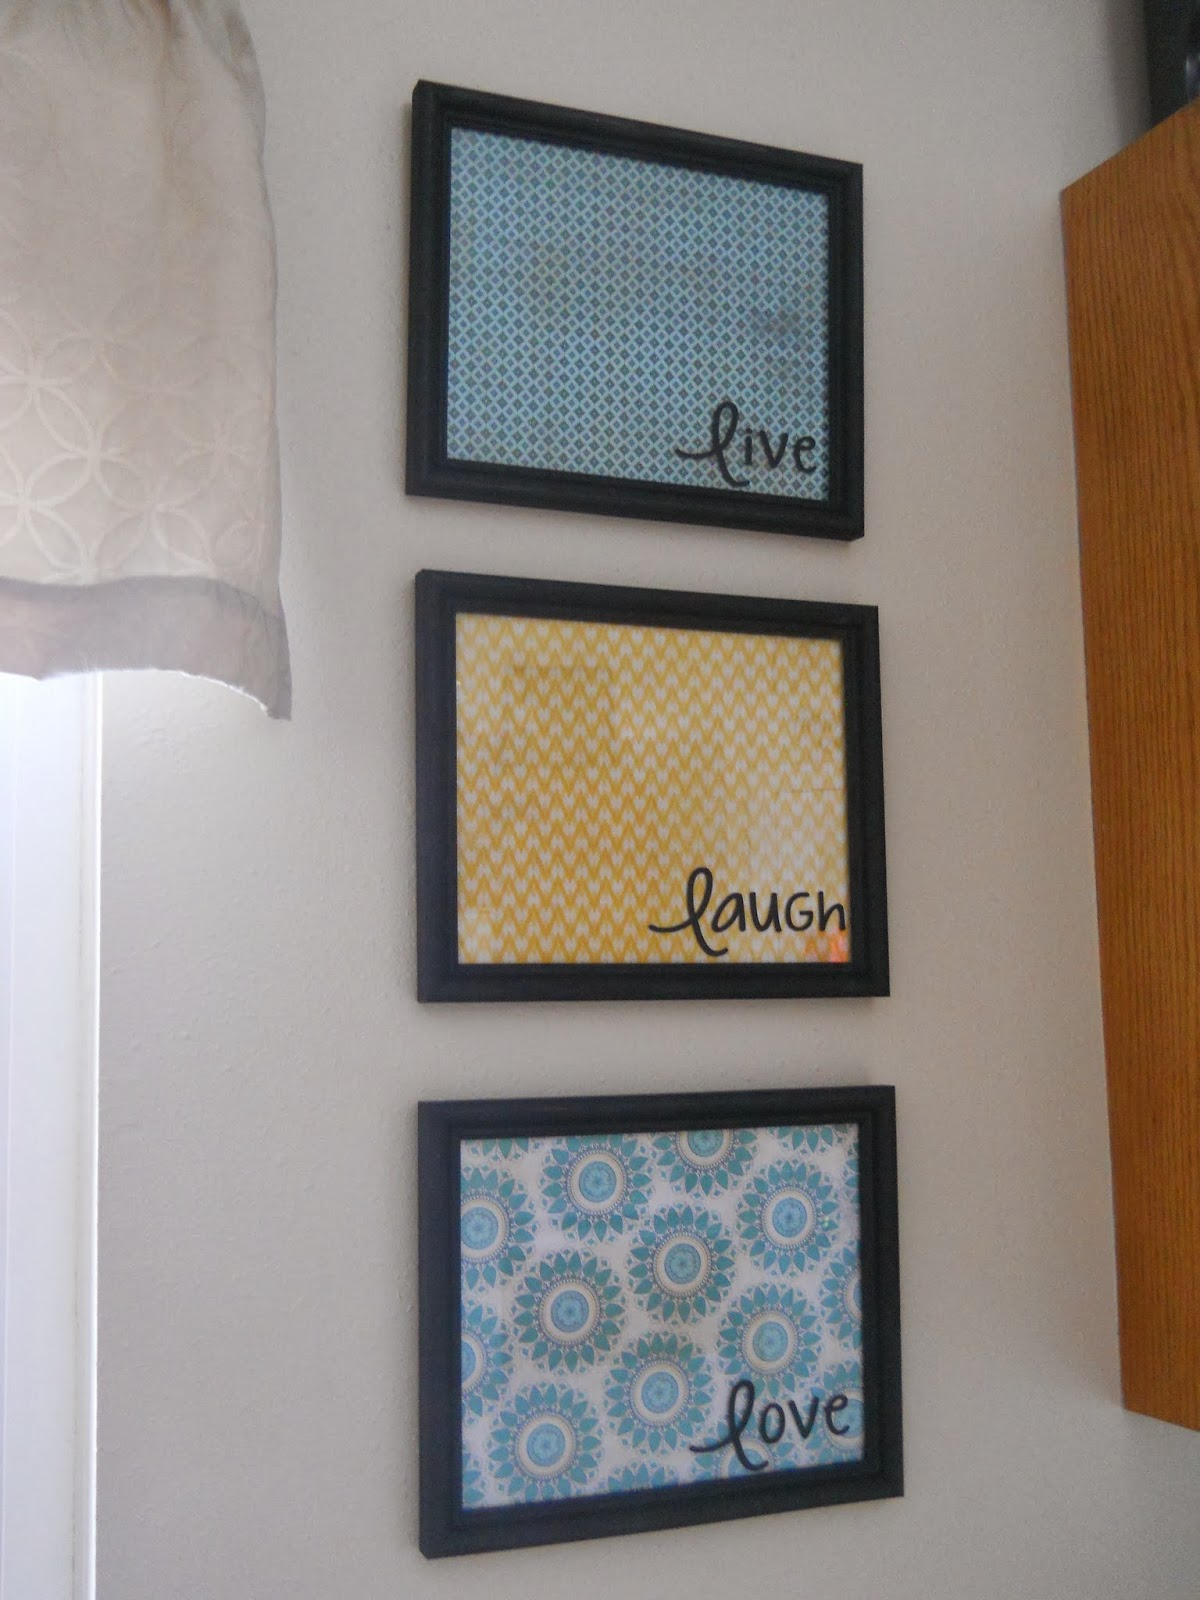 the scrapbook paper adds the pop of color my kitchen needed